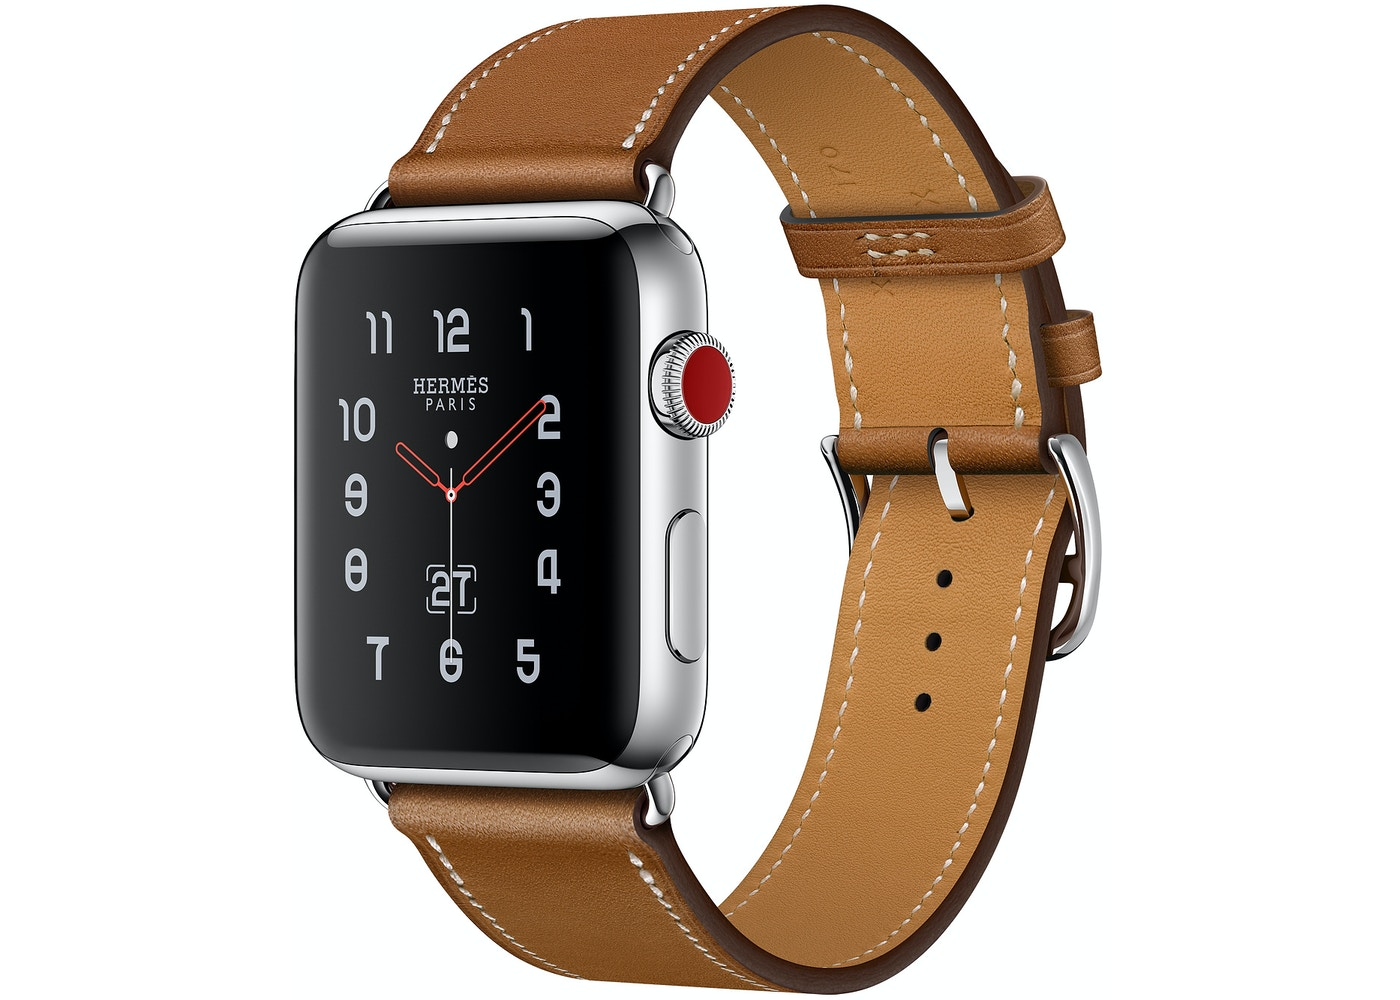 on sale f1c4a 63d0c Apple Watch Hermes Series 3 GPS + Cellular 42mm Space Gray Stainless ...